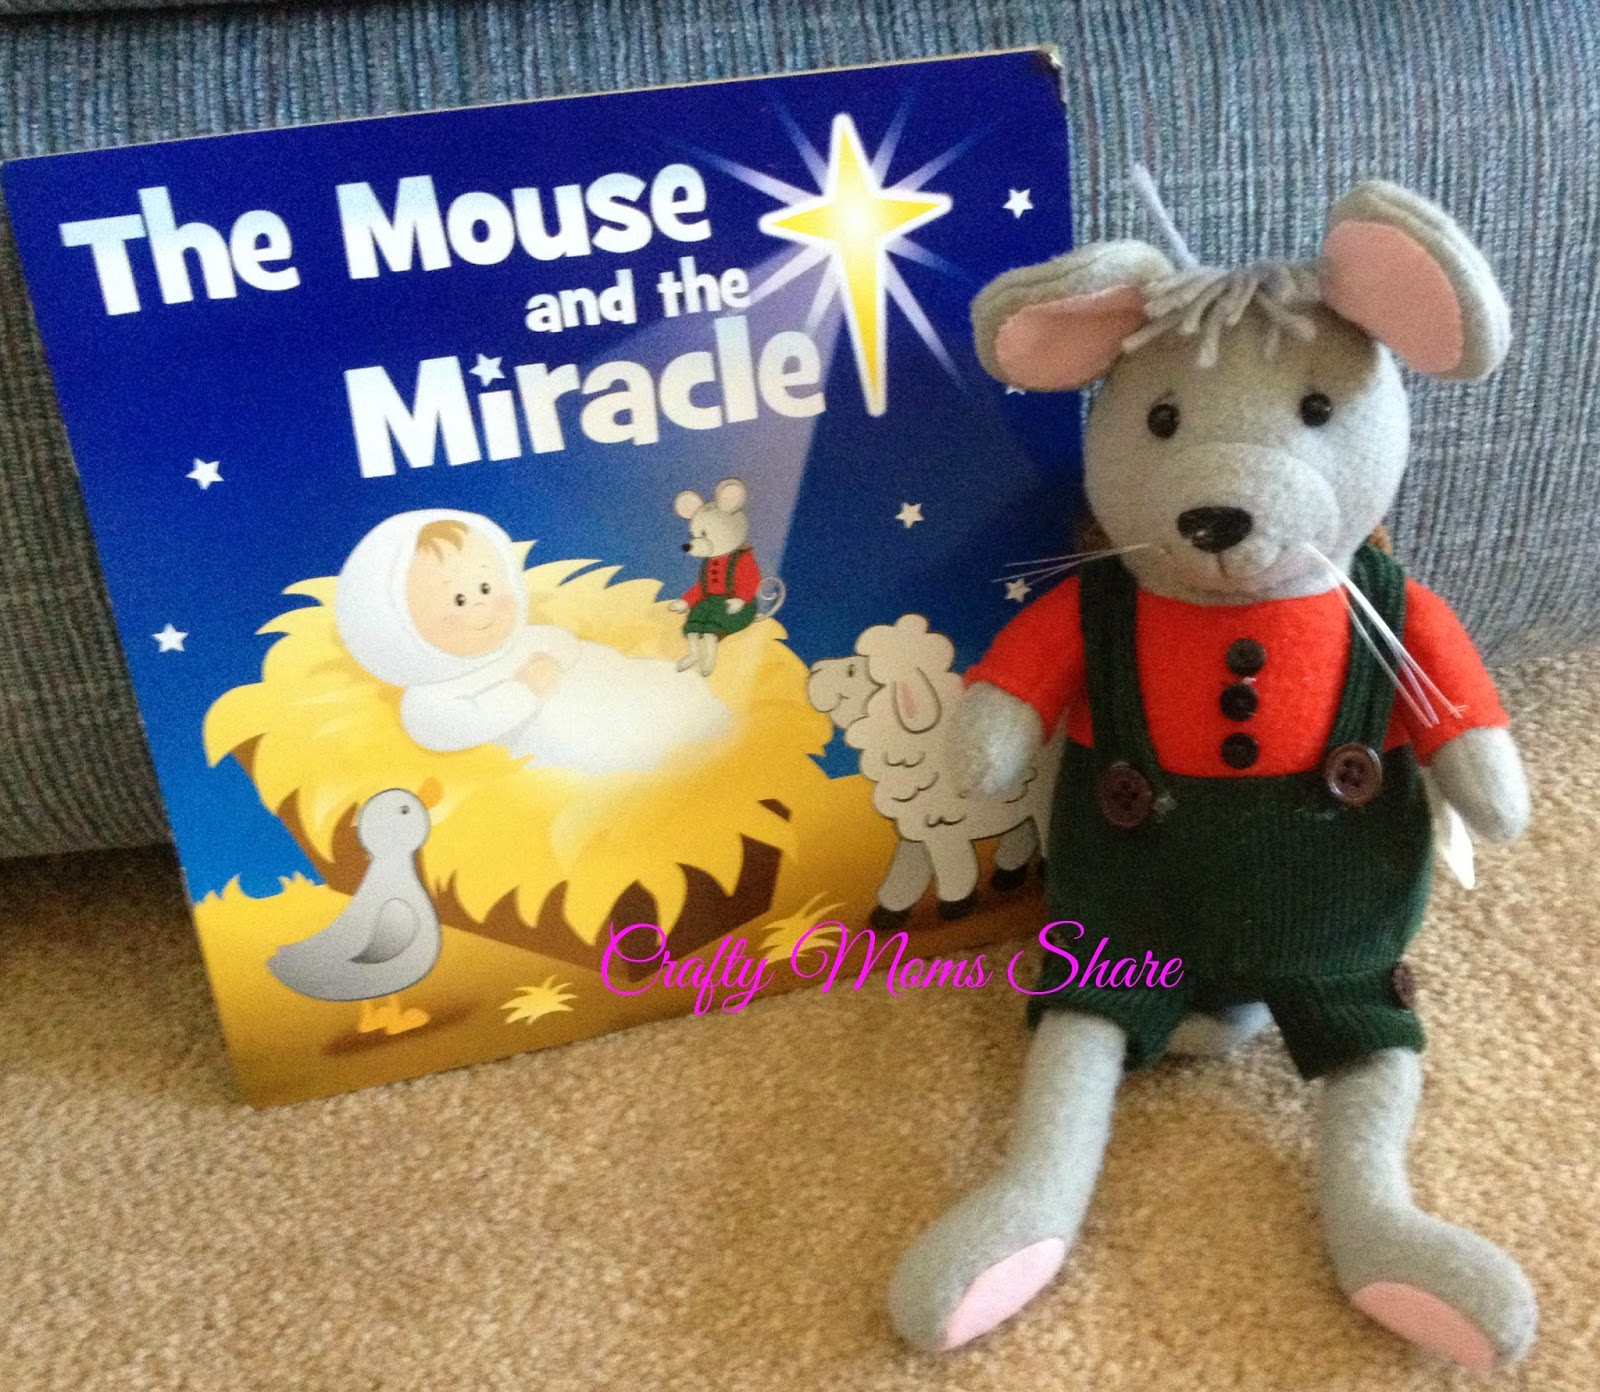 http://www.orientaltrading.com/the-mouse-and-the-miracle-plush-with-book-a2-13684199.fltr?Ntt=mouse%20and%20the%20miracle